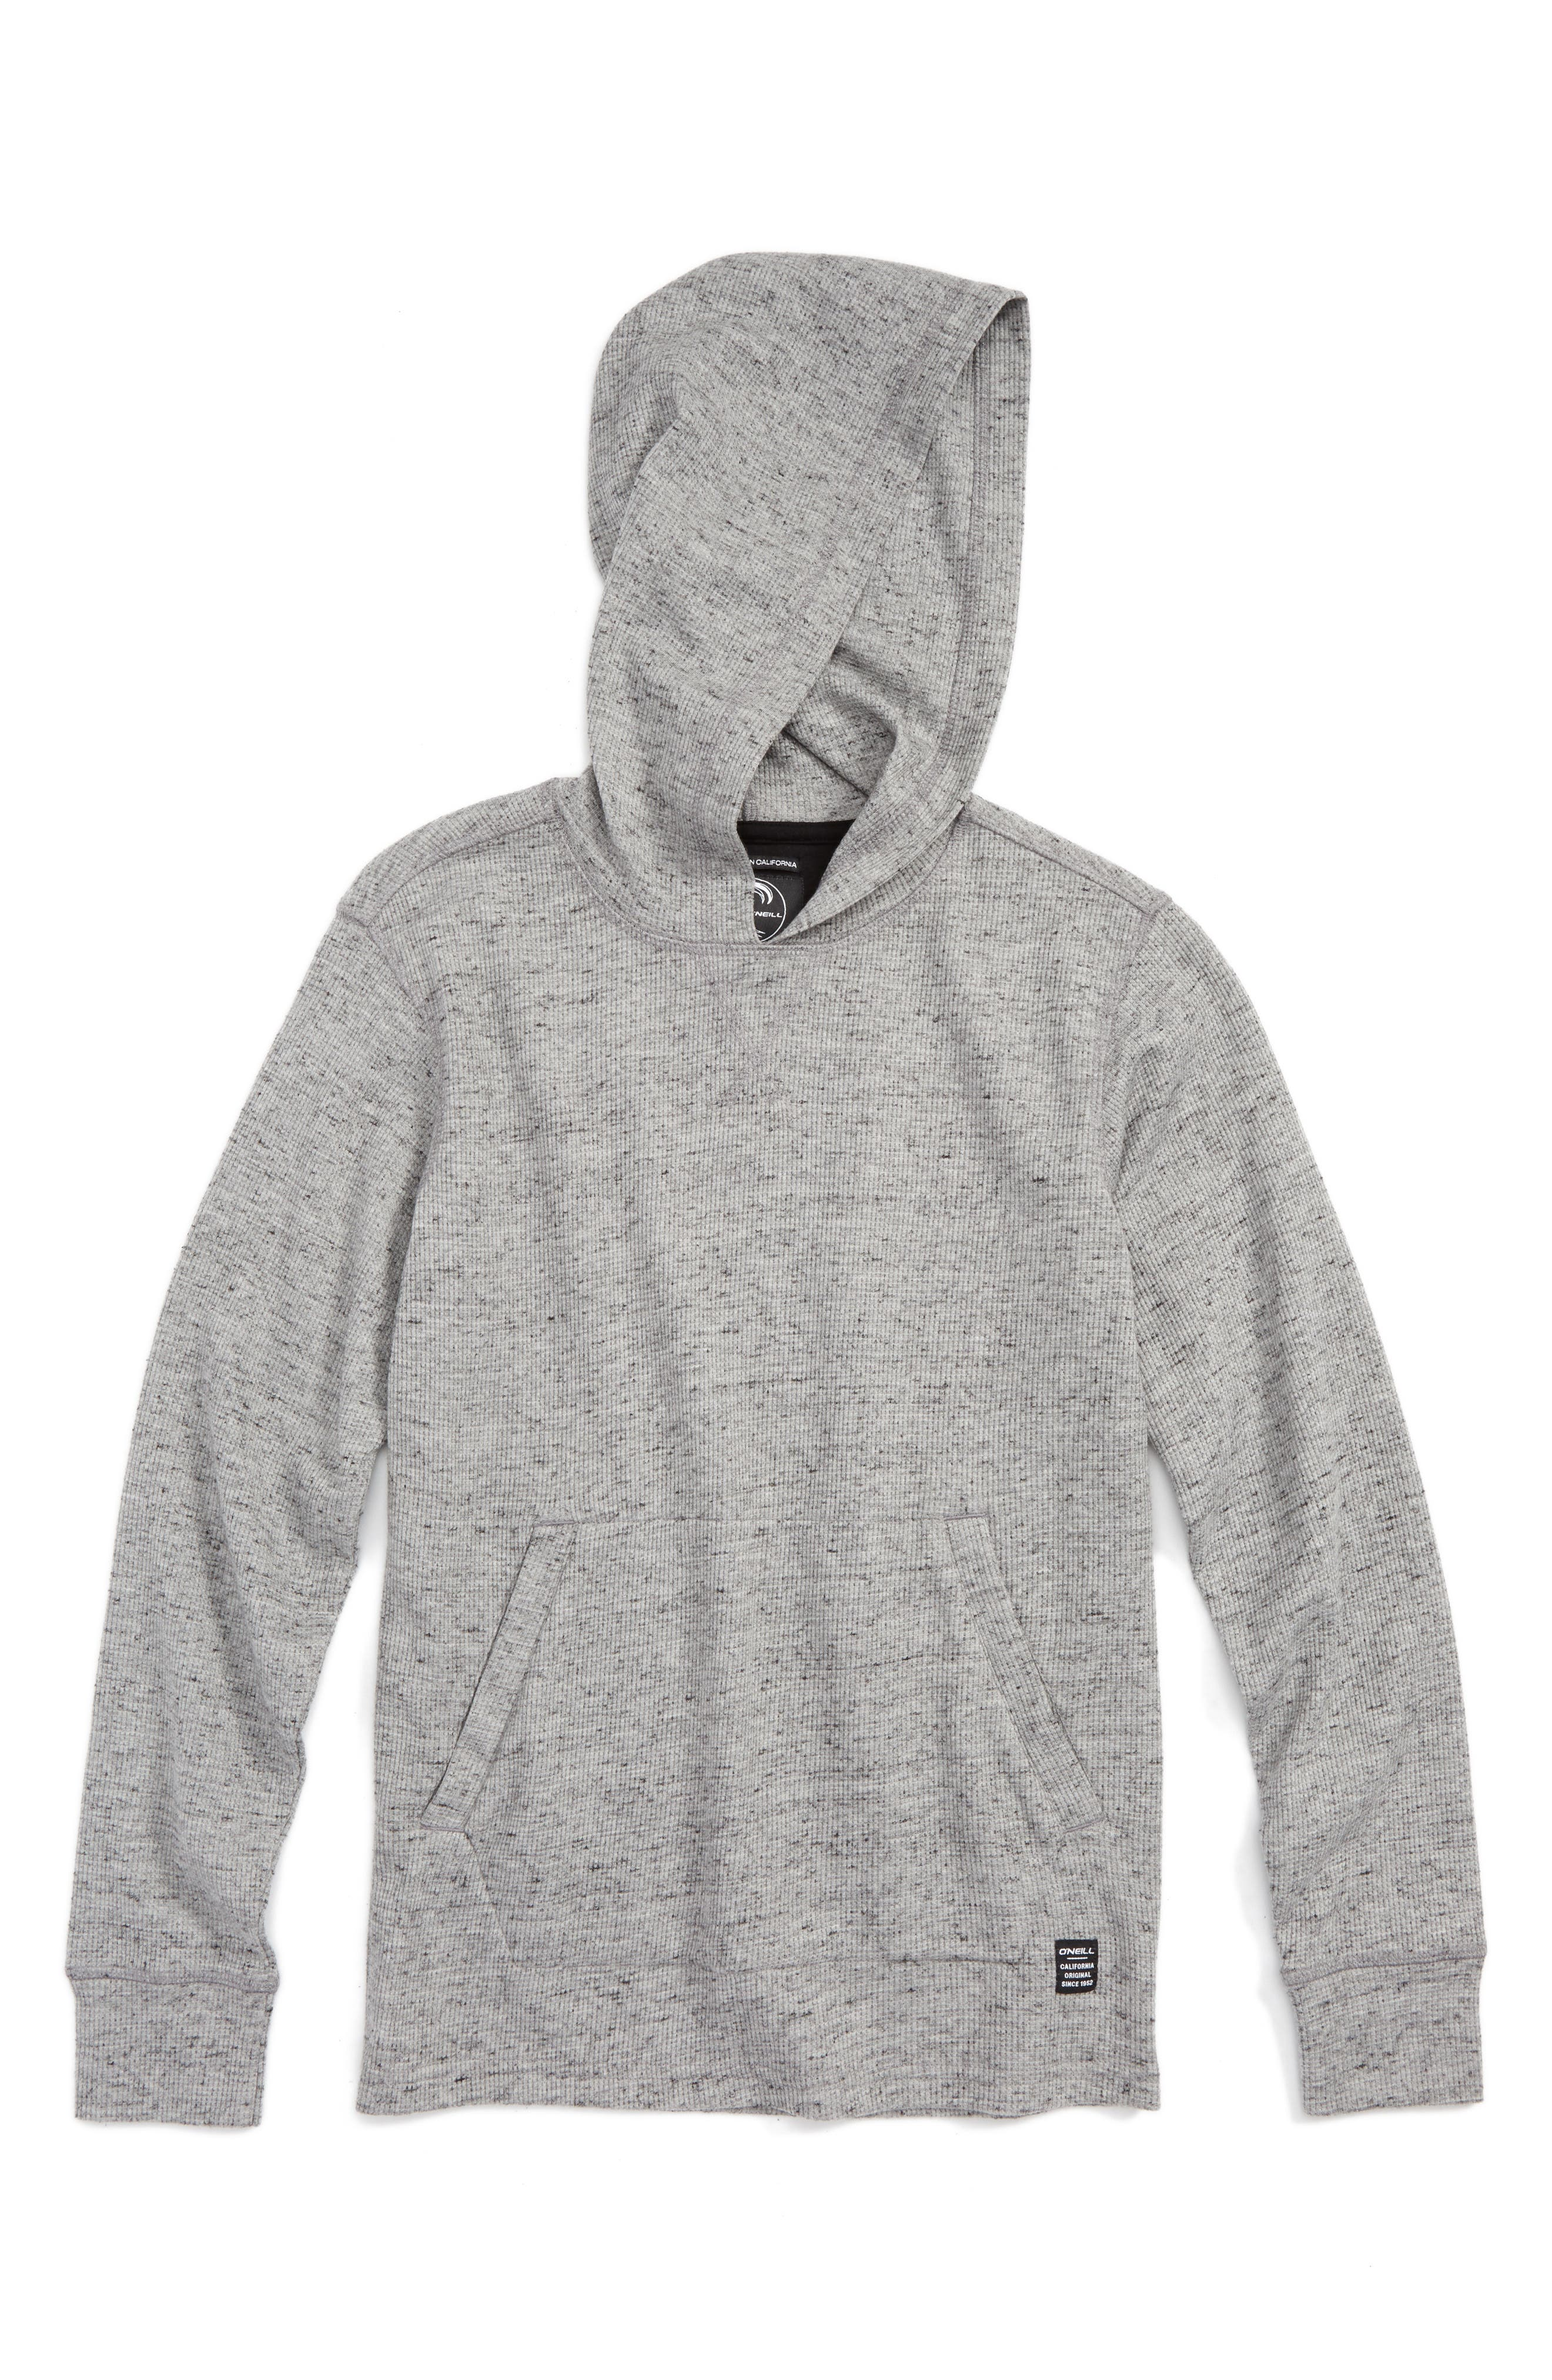 Boldin Thermal Pullover Hoodie,                             Main thumbnail 2, color,